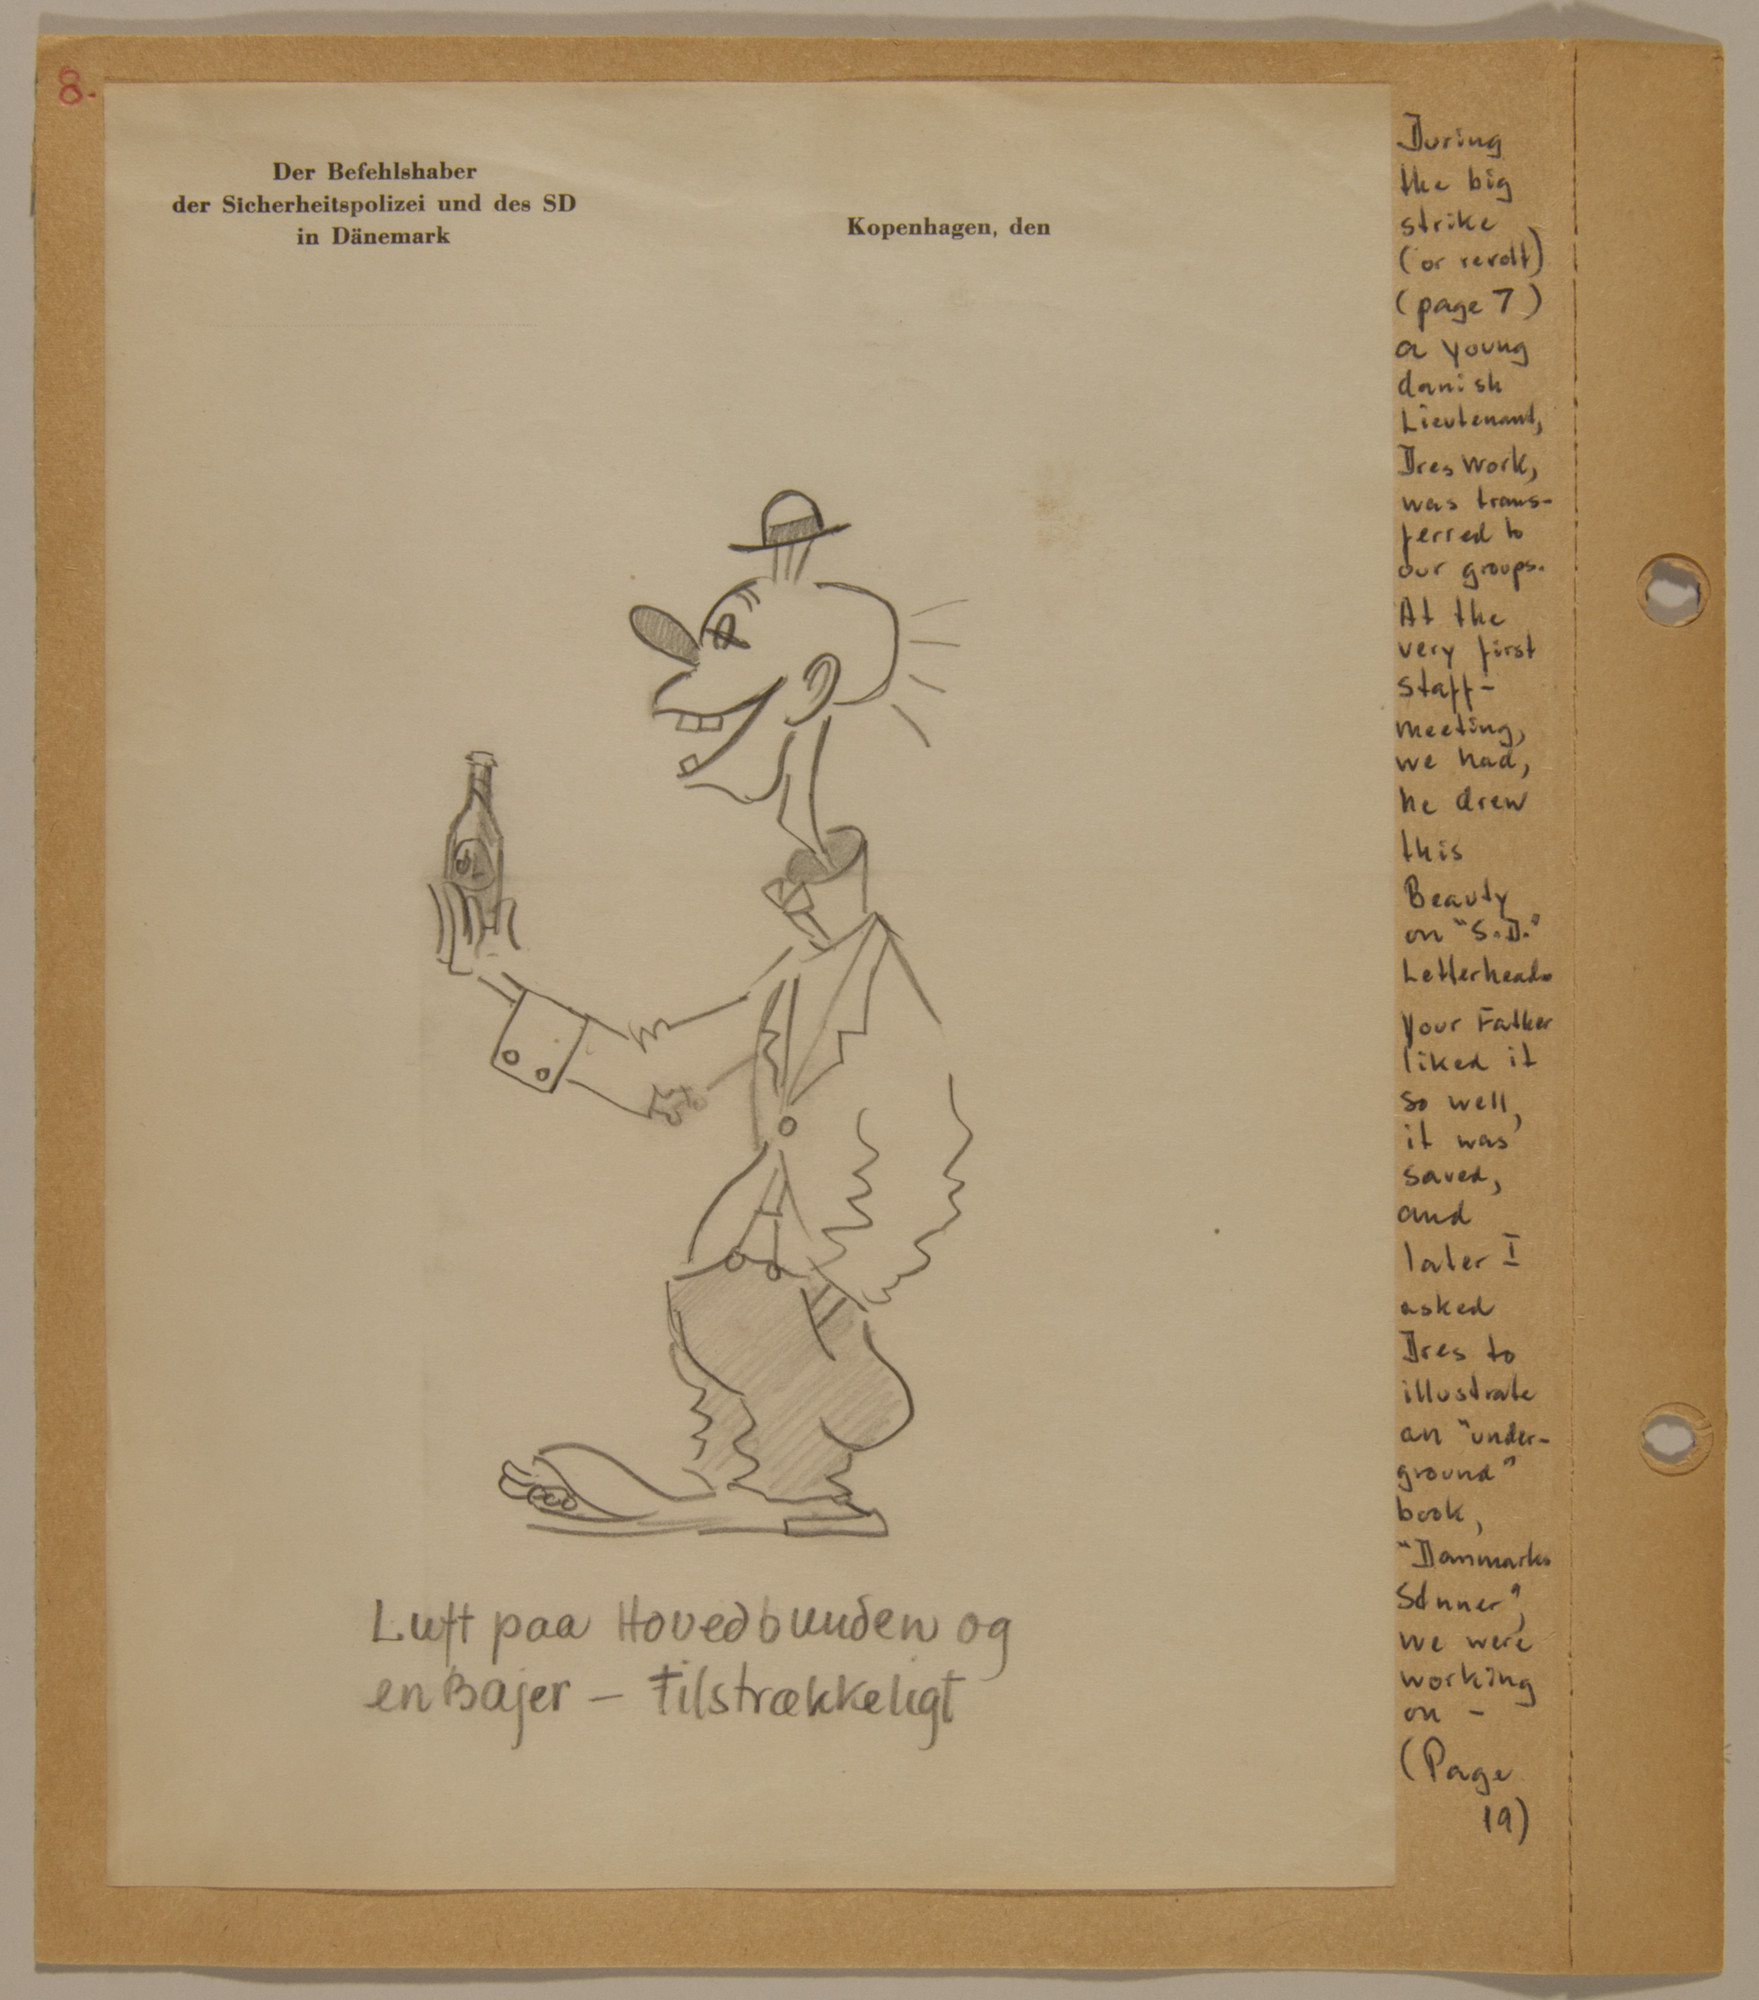 Page from volume five of a set of scrapbooks compiled by Bjorn Sibbern, a Danish policeman and resistance member, documenting the German occupation of Denmark.  This page contains a clown caricature drawn on SD stationary by a member of the resistance.